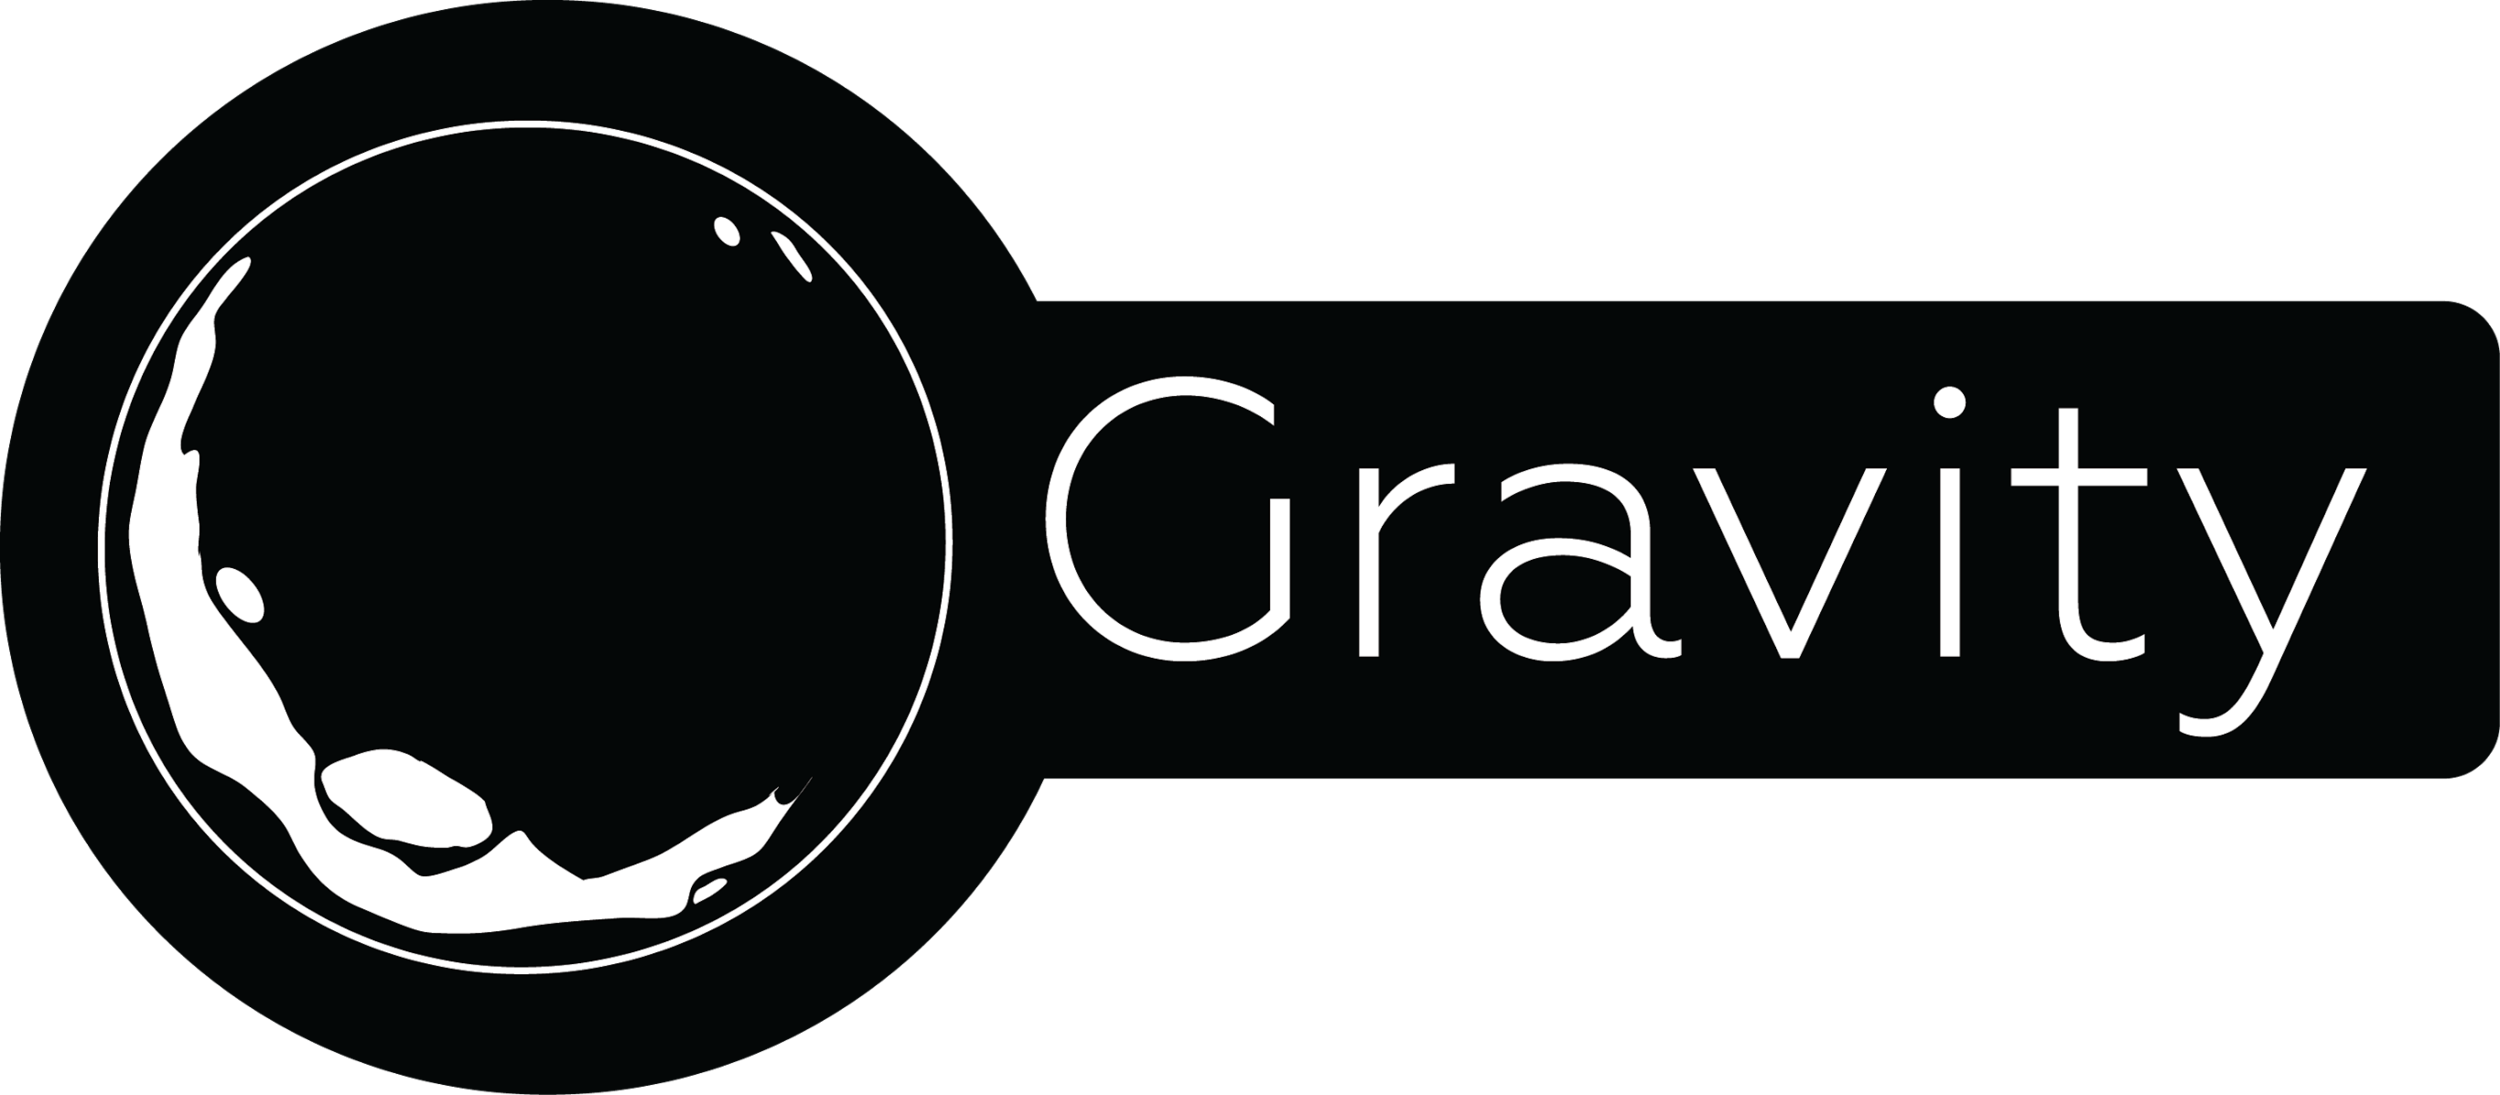 Gravity Black logo.PNG